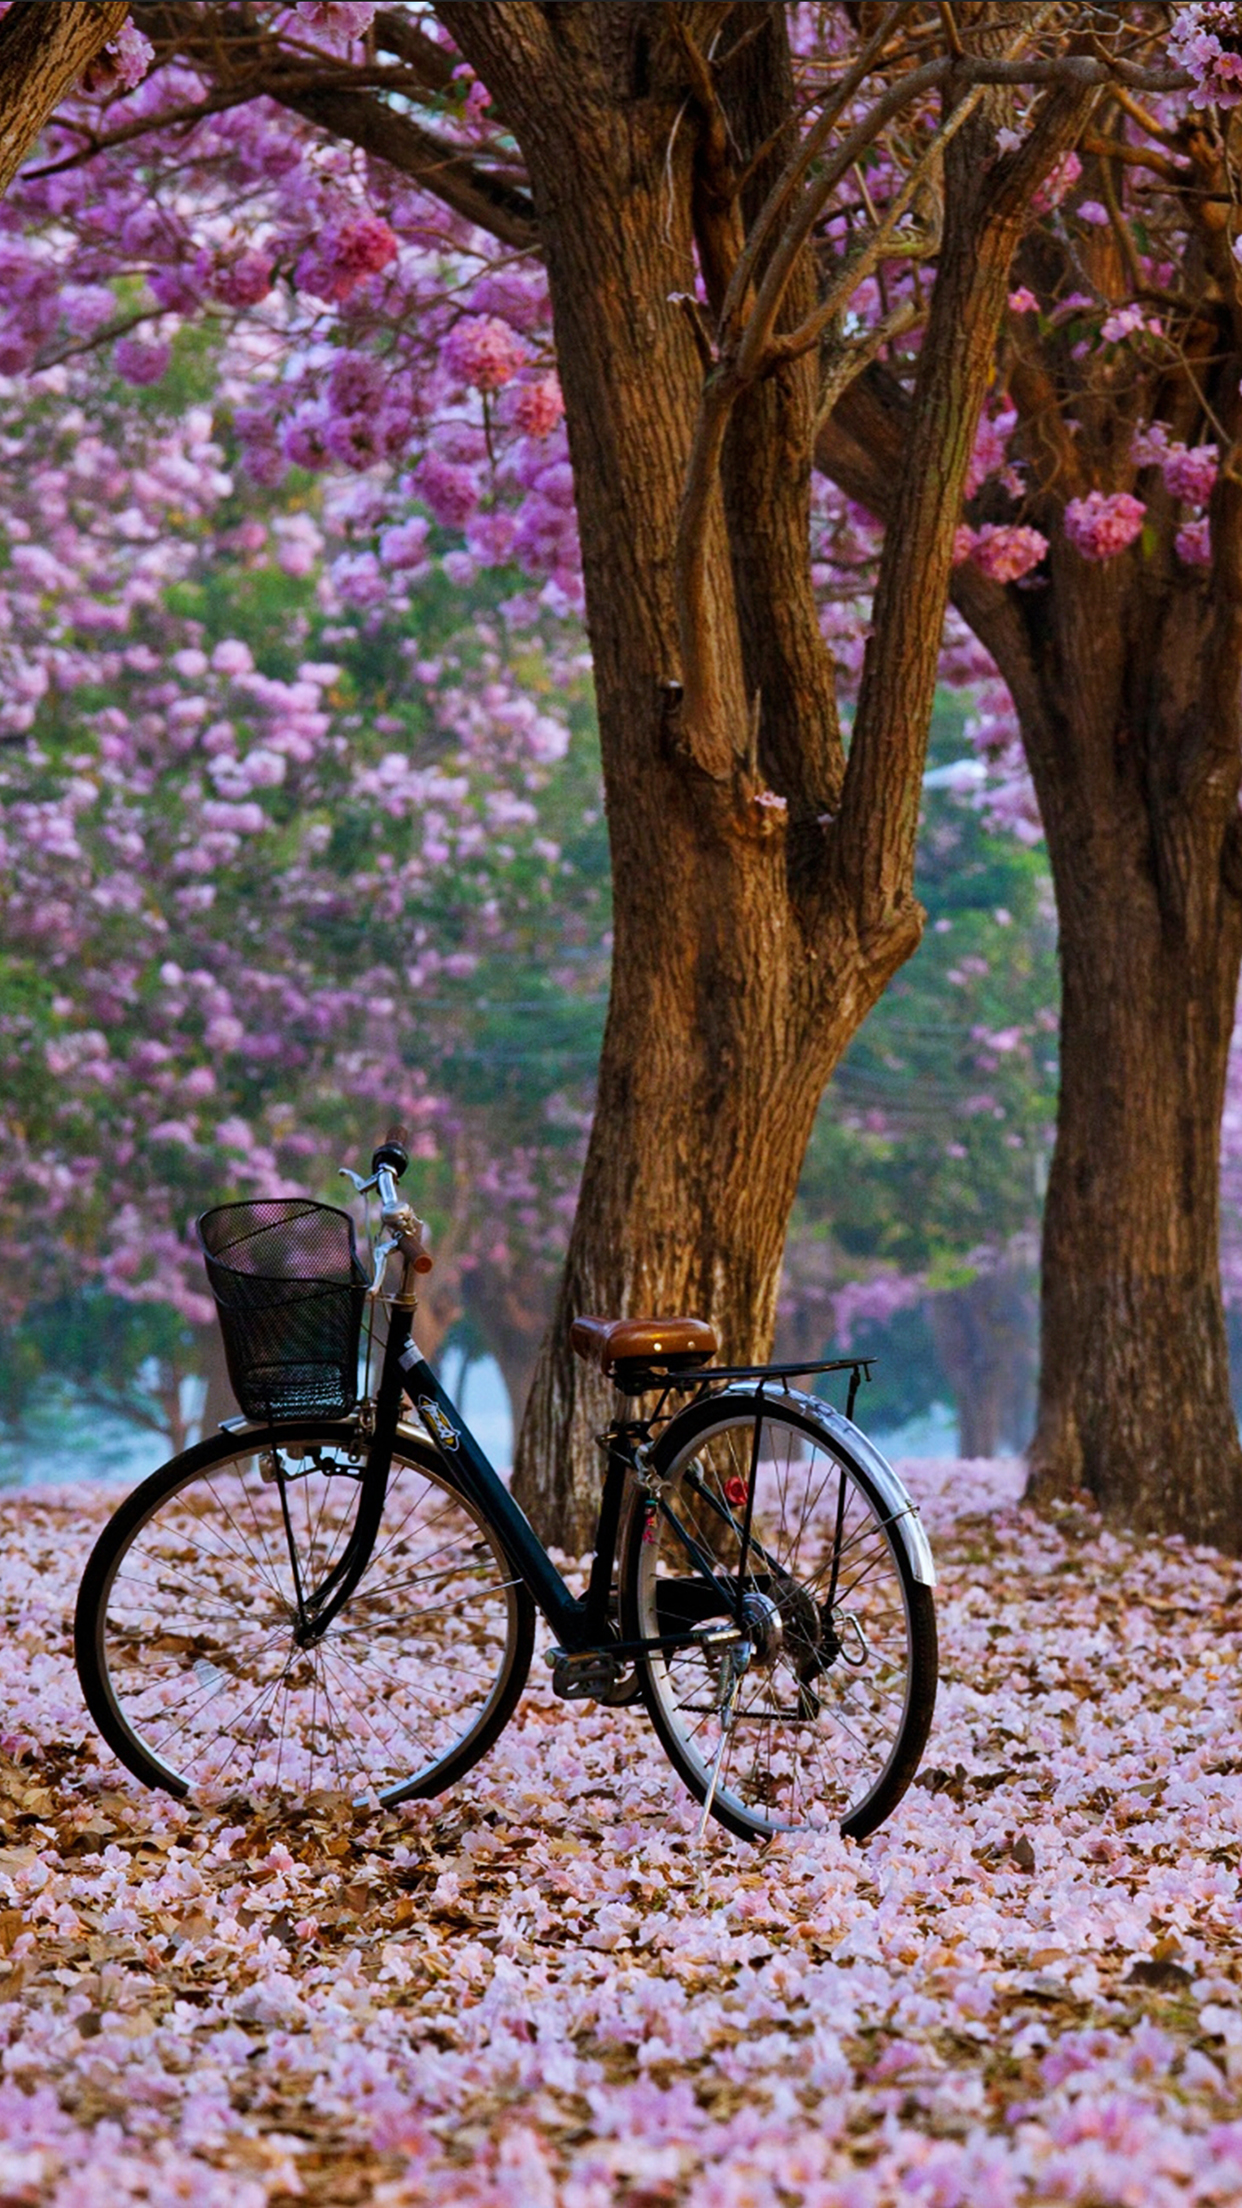 Spring Bike Wallpaper For Iphone X 8 7 6 Free